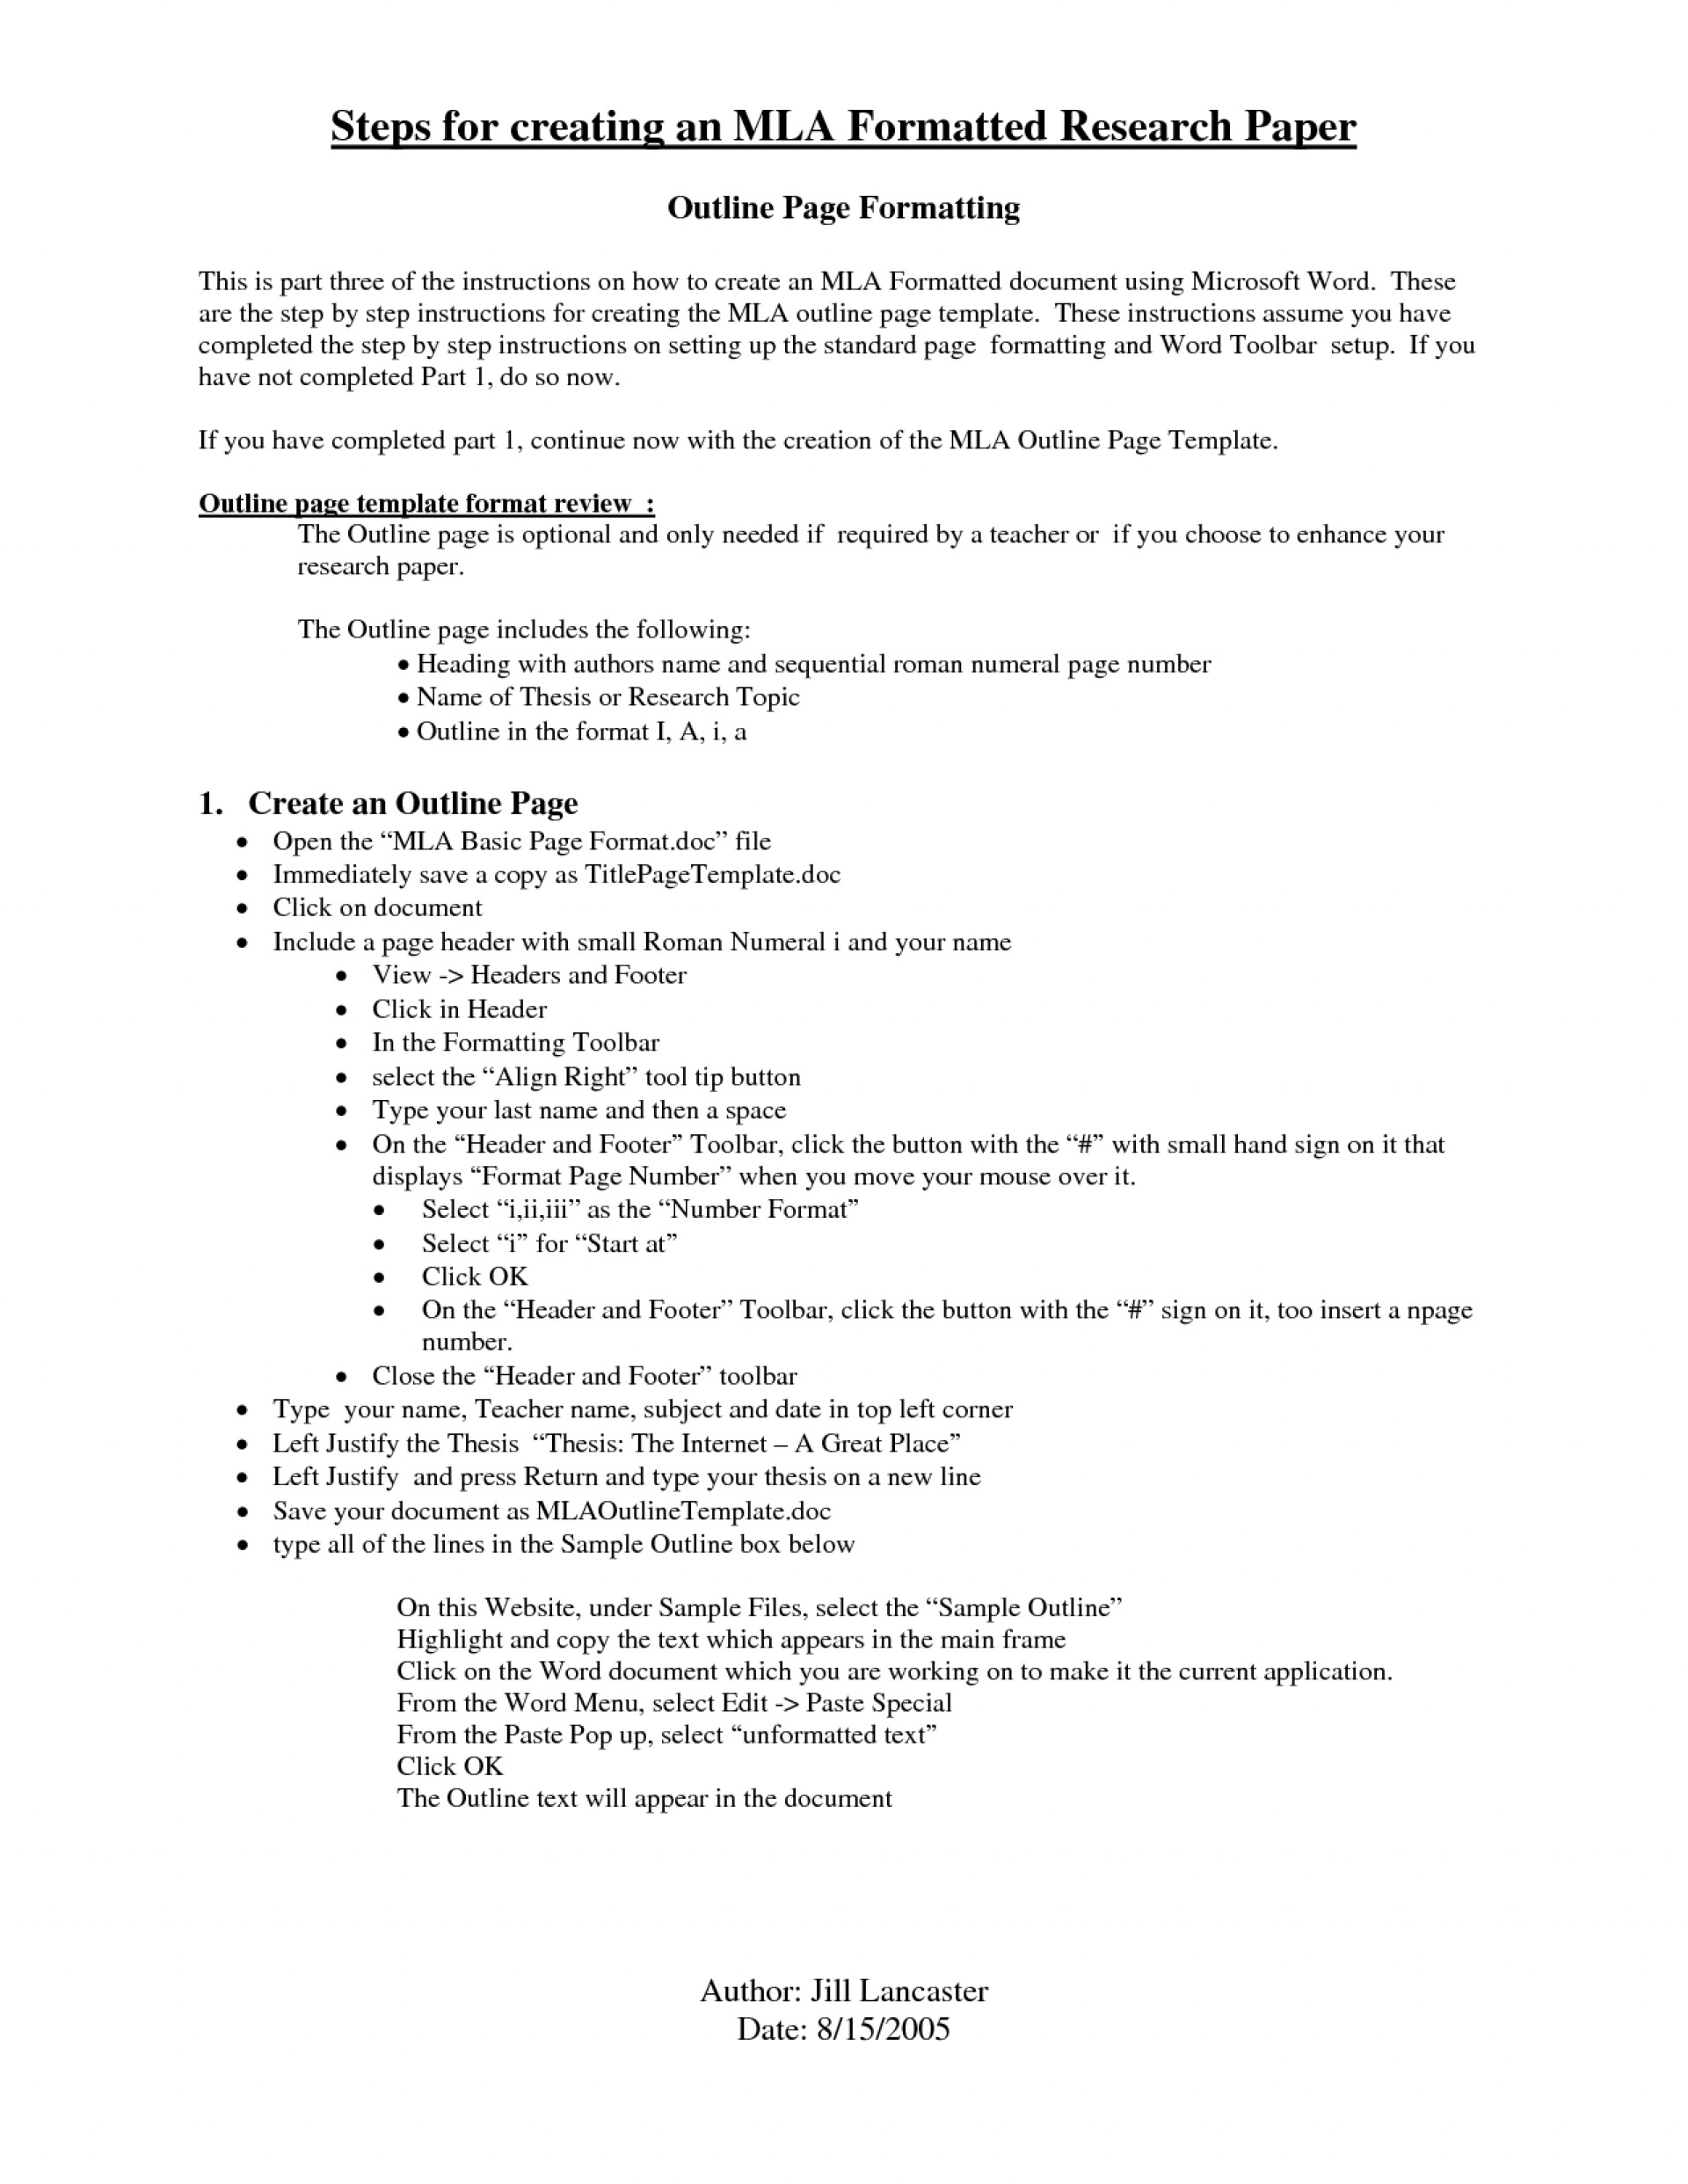 012 Format Research Paper Sample Essay Mla Papers Outline Template Heading Title Page College Without Style Paragraph Unique Apa Example 2017 Introduction 1920